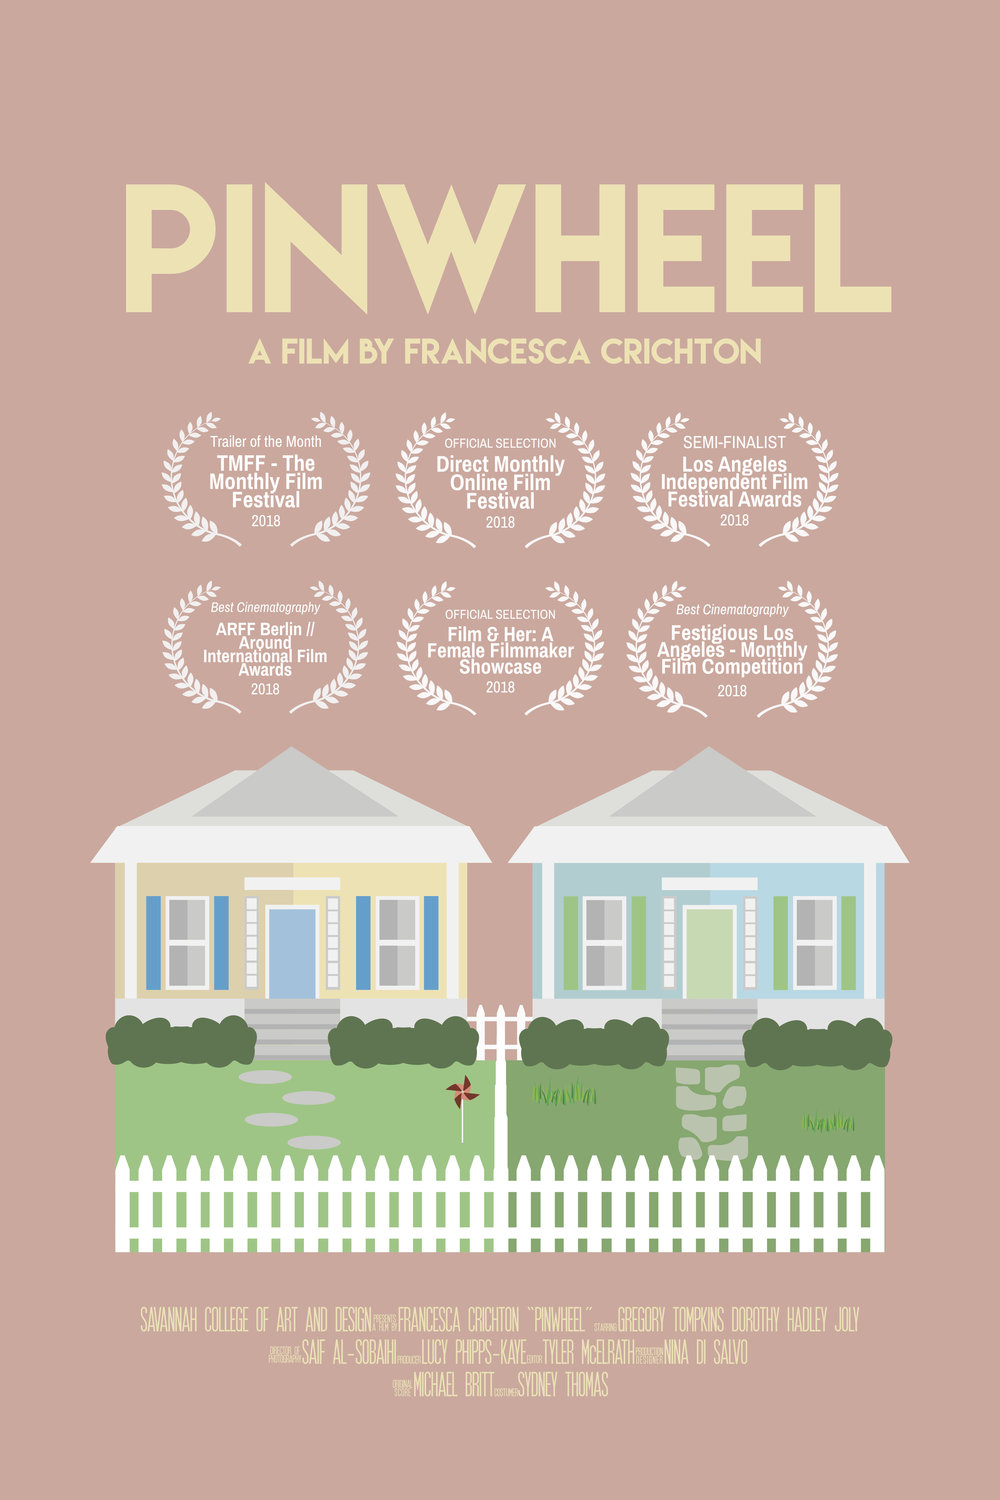 Around International film festival (Berlin)Best Cinematography - Year: 2018Film: PinwheelRole: Director of Photography In a quest to find a new love, John turns to his lawn decoration in the hope of wooing his neighbor.